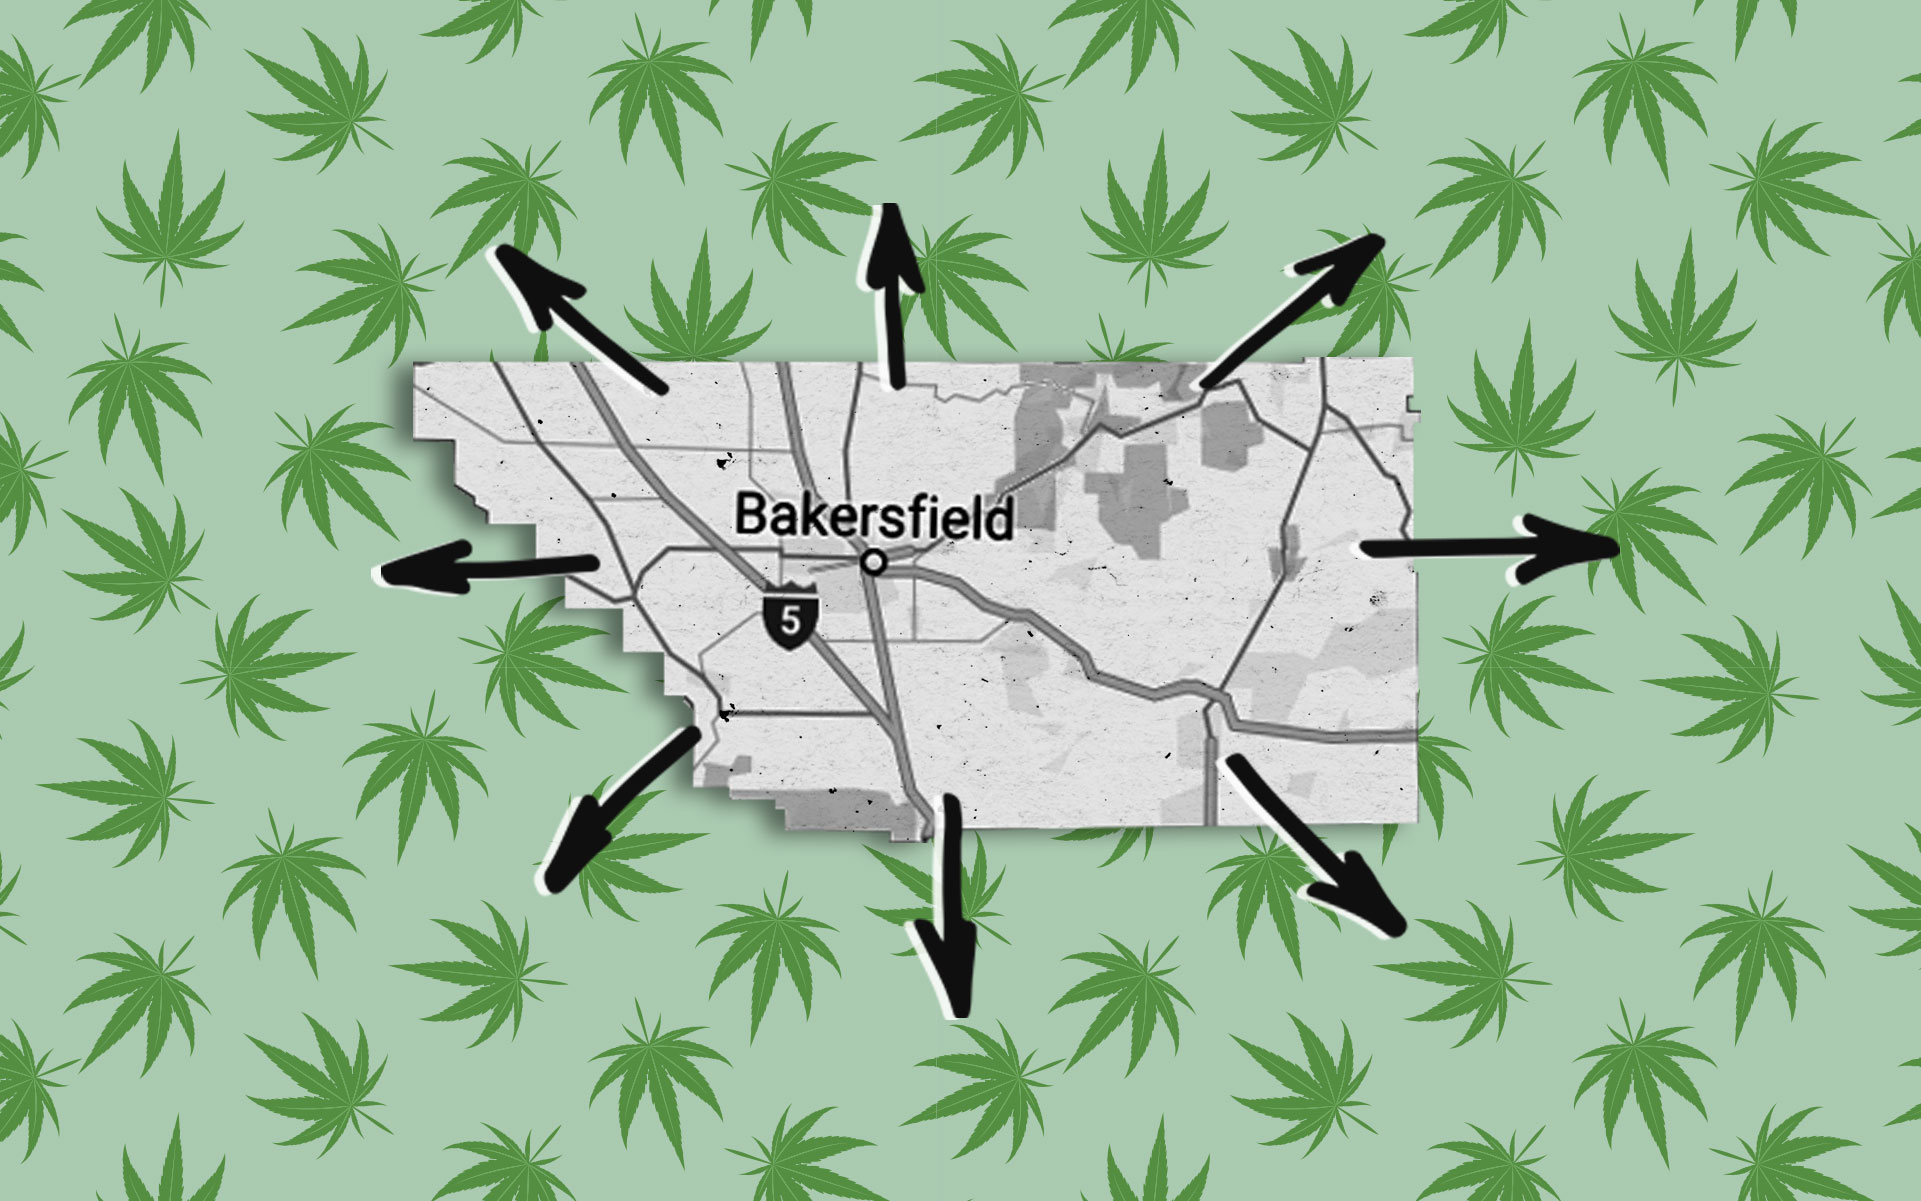 The Wasteland: In 2017, Kern officials rejected an estimated 8,750 jobs and $37.5 million in annual legal cannabis tax revenue. (GOLDsquirrel, luplupme/iStock, Google Maps)